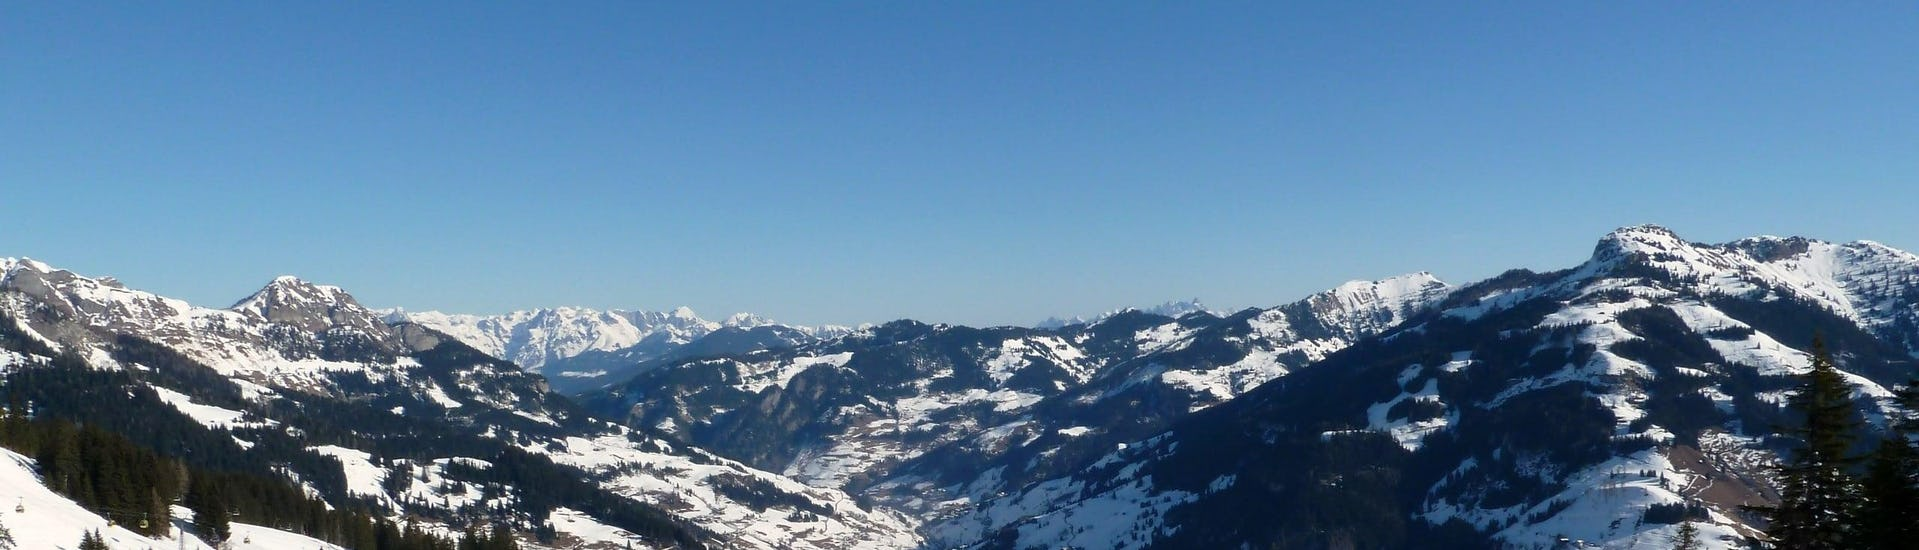 View over the sunny mountain landscape while learning to ski with the ski schools in Großarl.